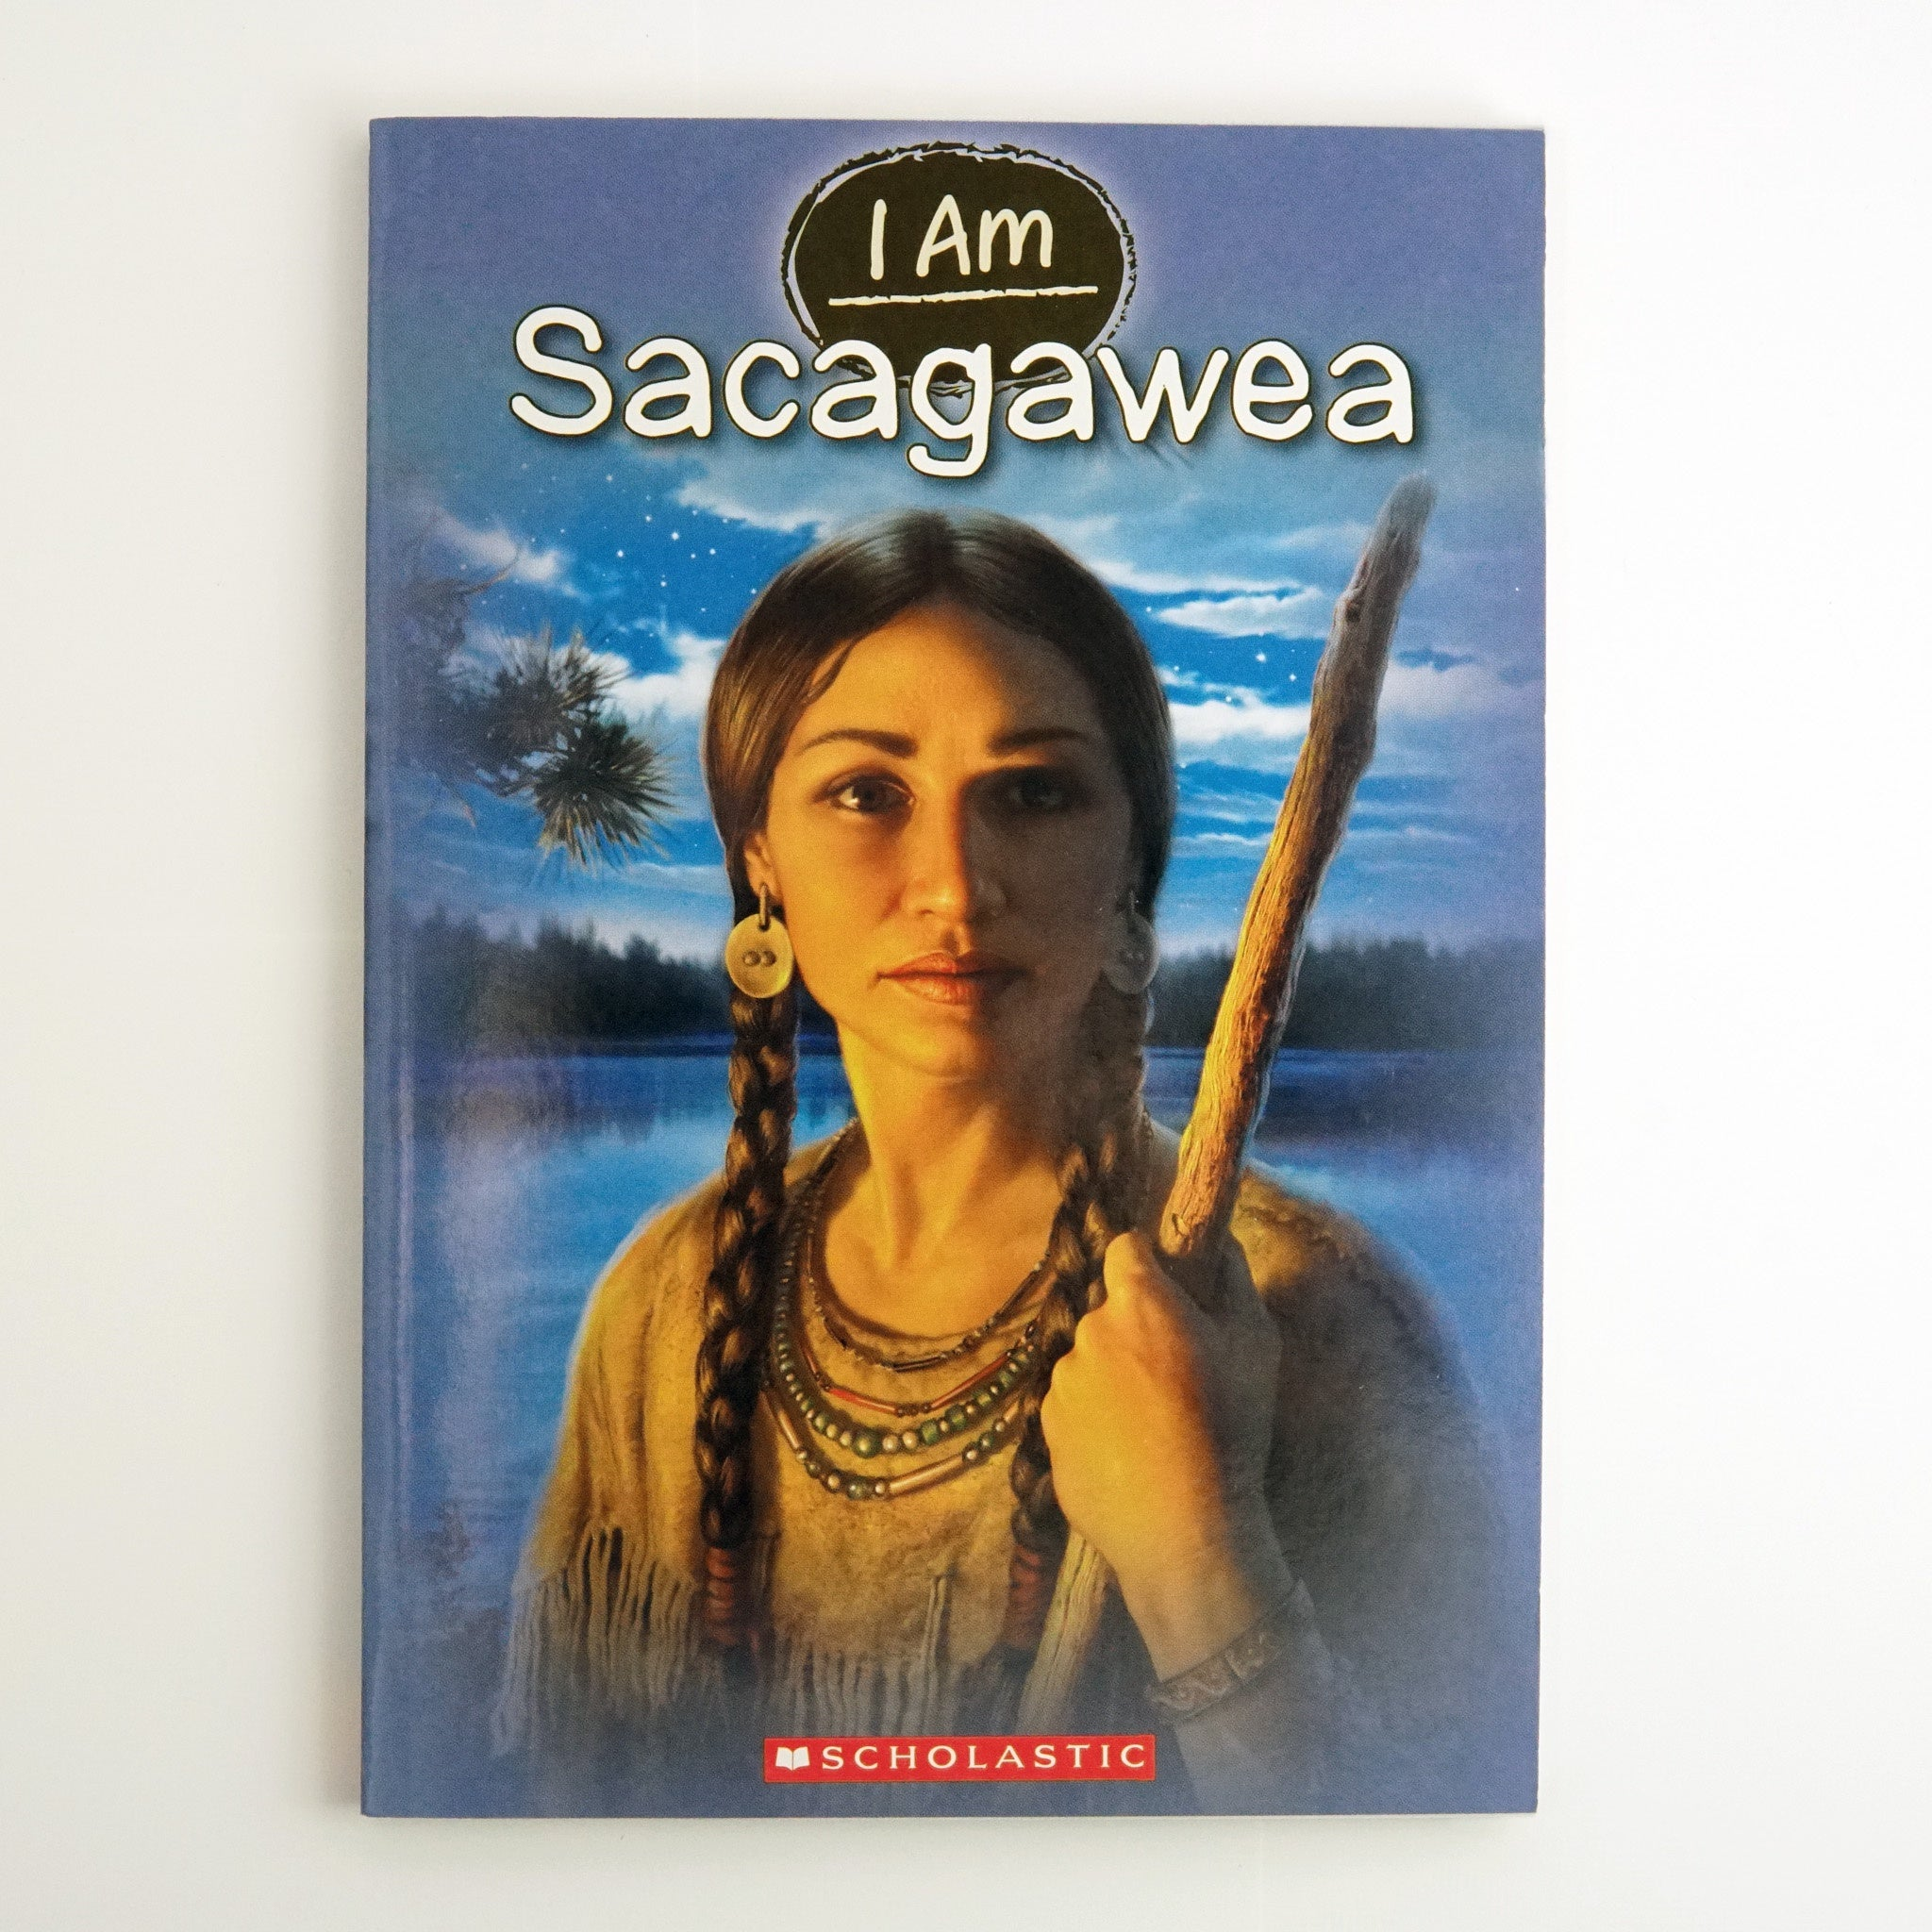 I am Sacagawea by Grace Norwich